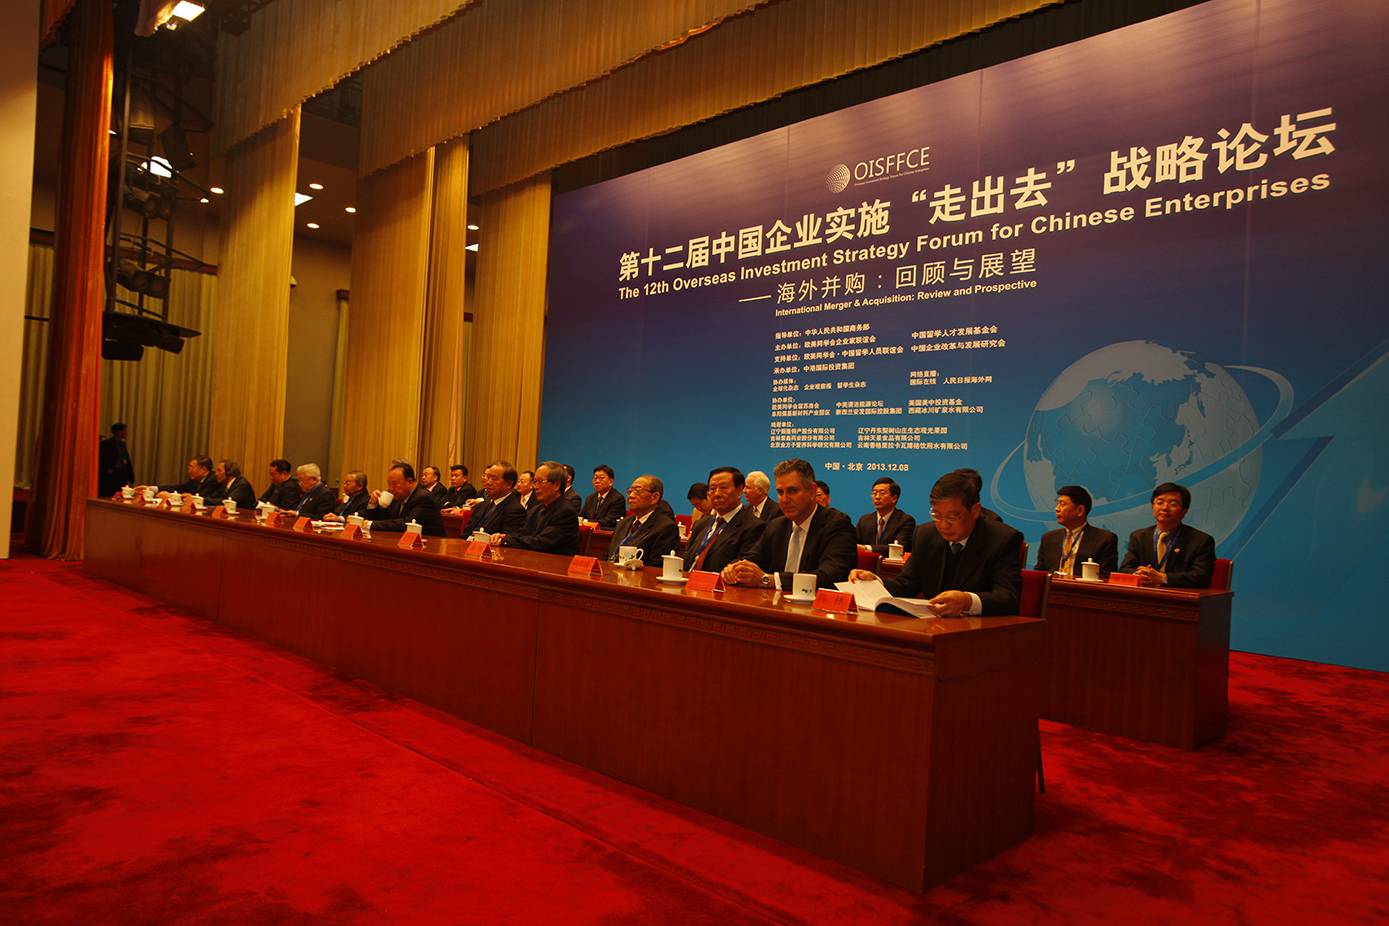 The Twelfth China Enterprises' Strategic Forum on